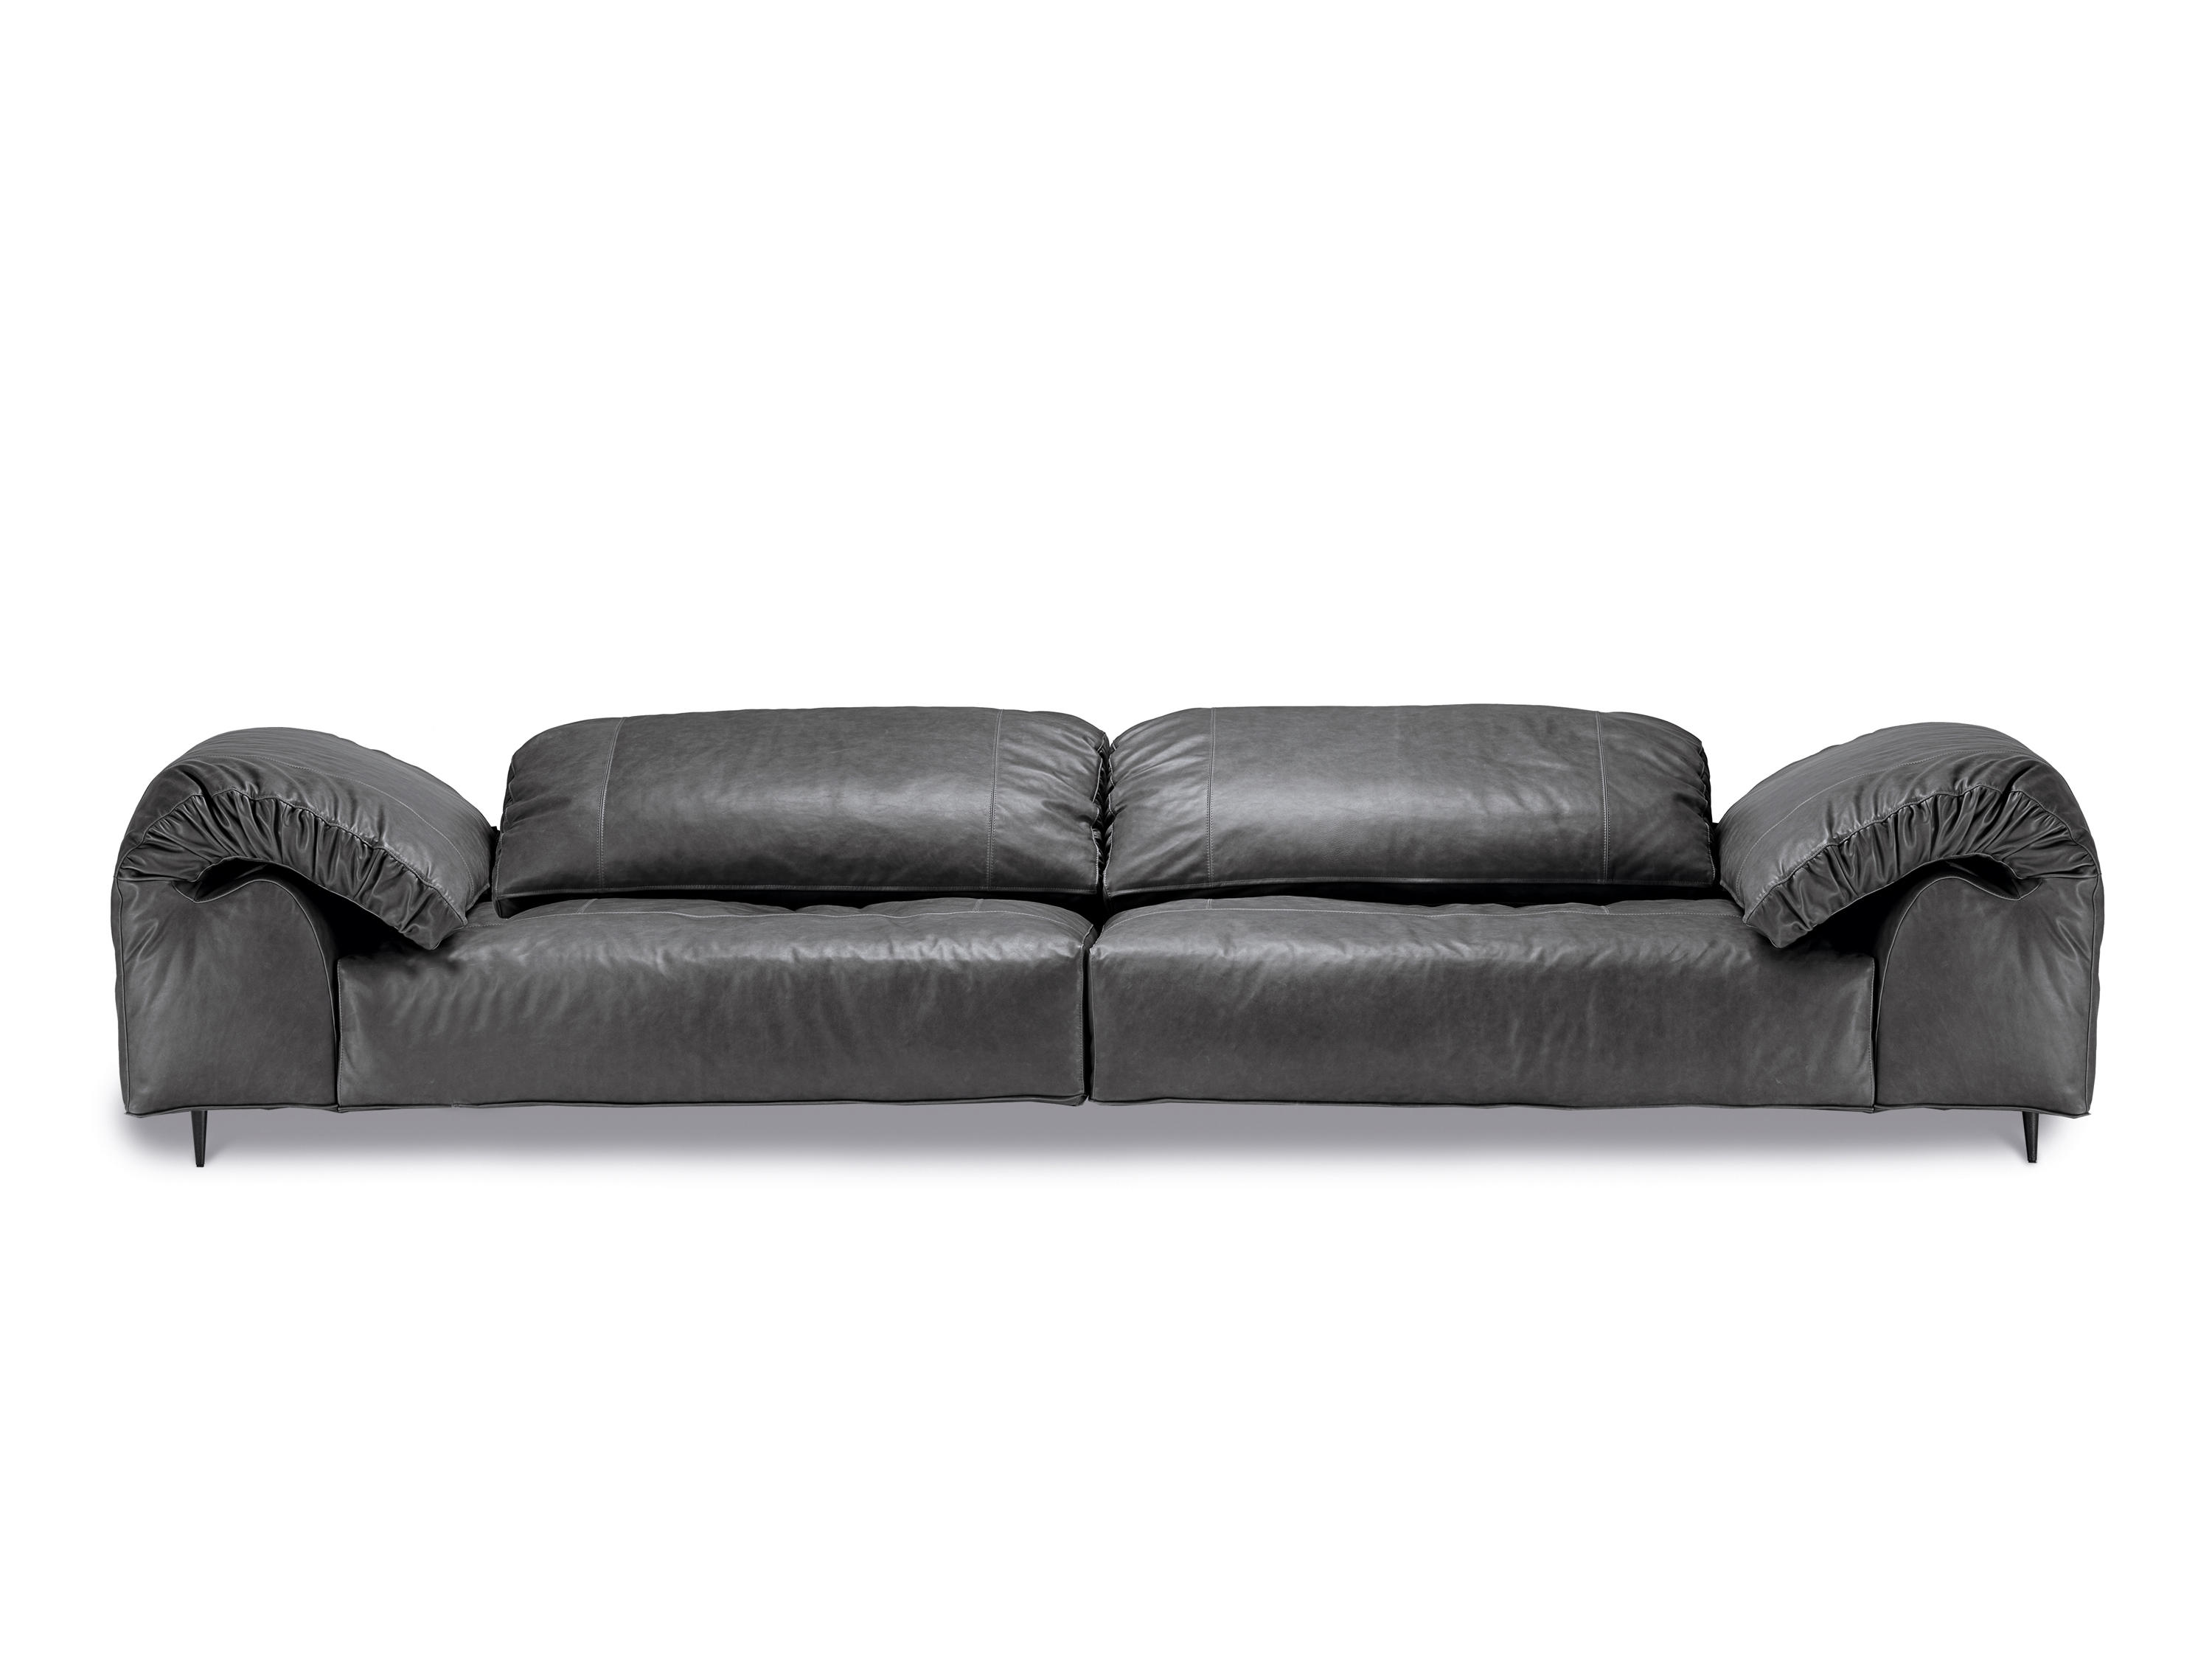 pu back high sale htm pm with sofa mf mfdesignfurn seater i end diamond design chesterfield